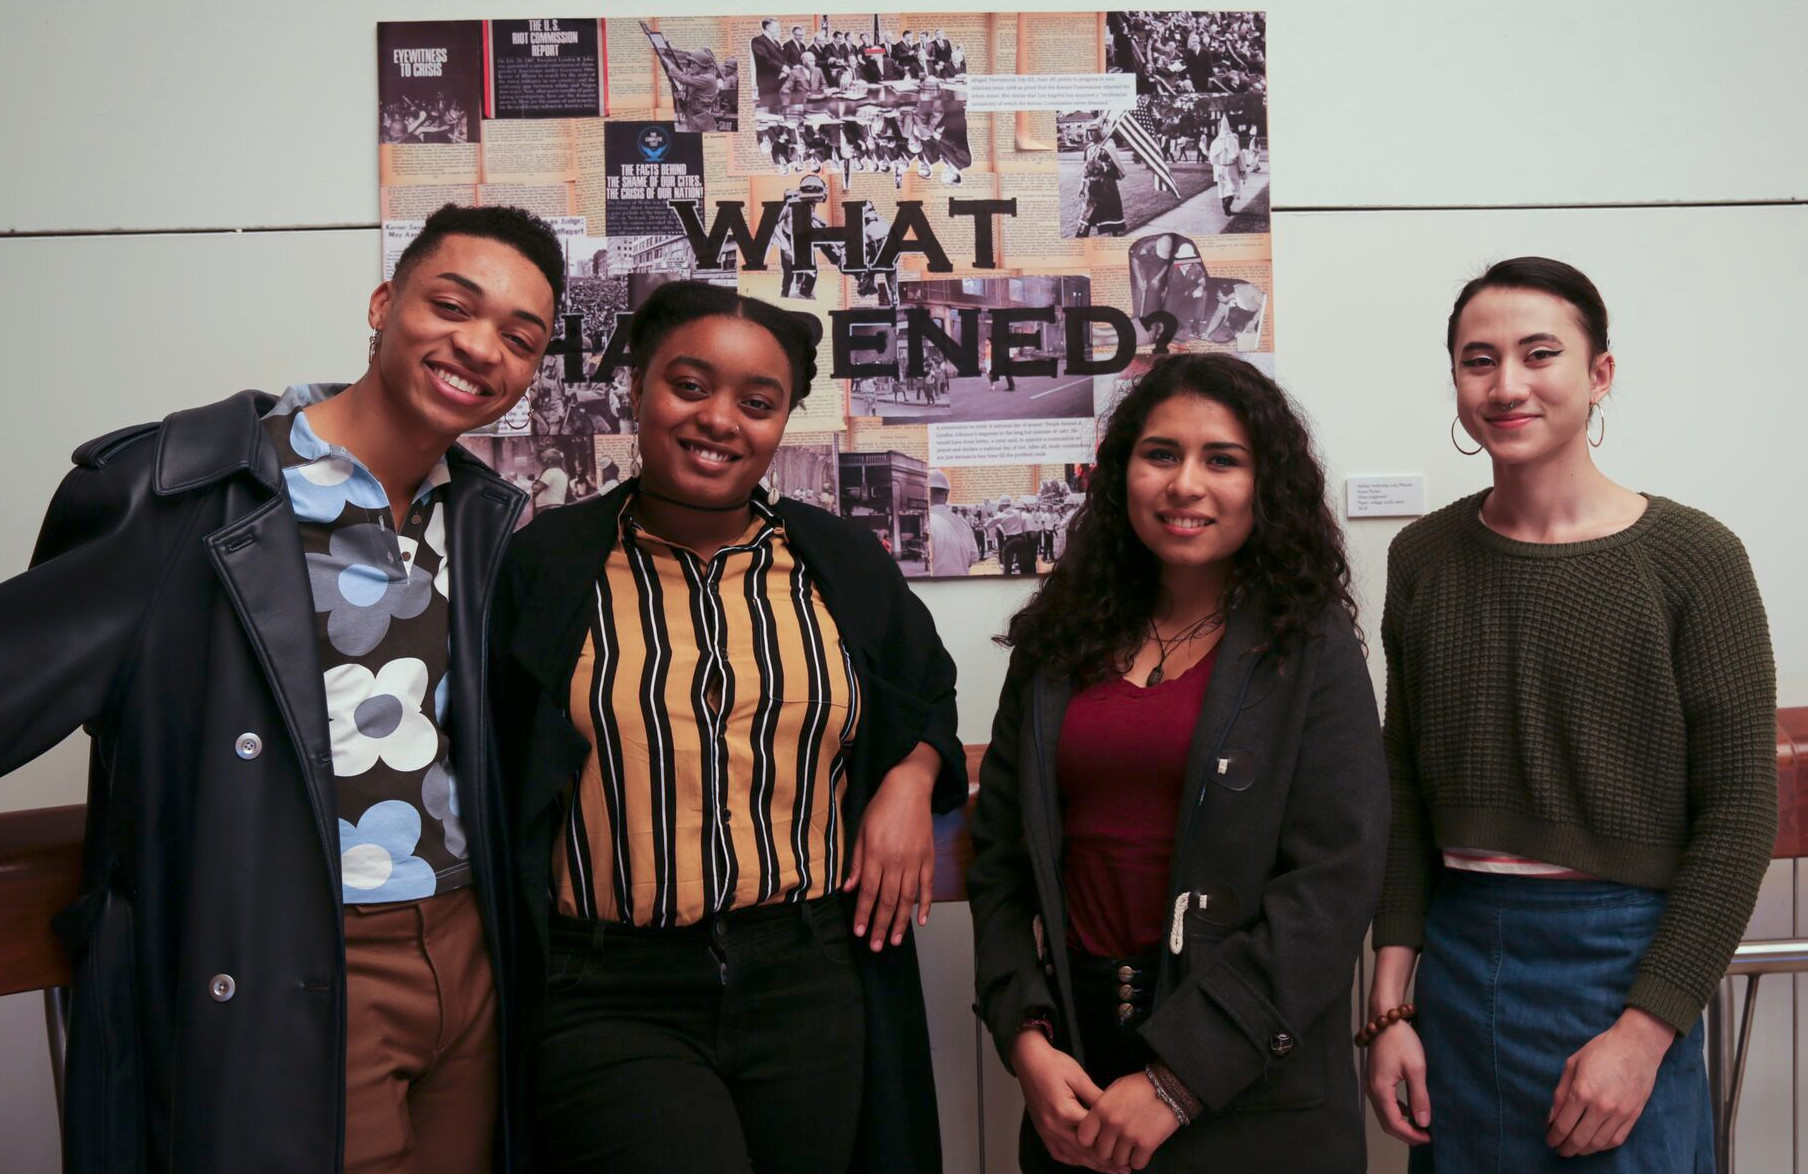 Kerner@50 Student Art Collaborative, Nikko Duren, Kiana Parker, Dulce María López, and el lee Silver. Not pictured Ashley Holloway and Lulu Matute.